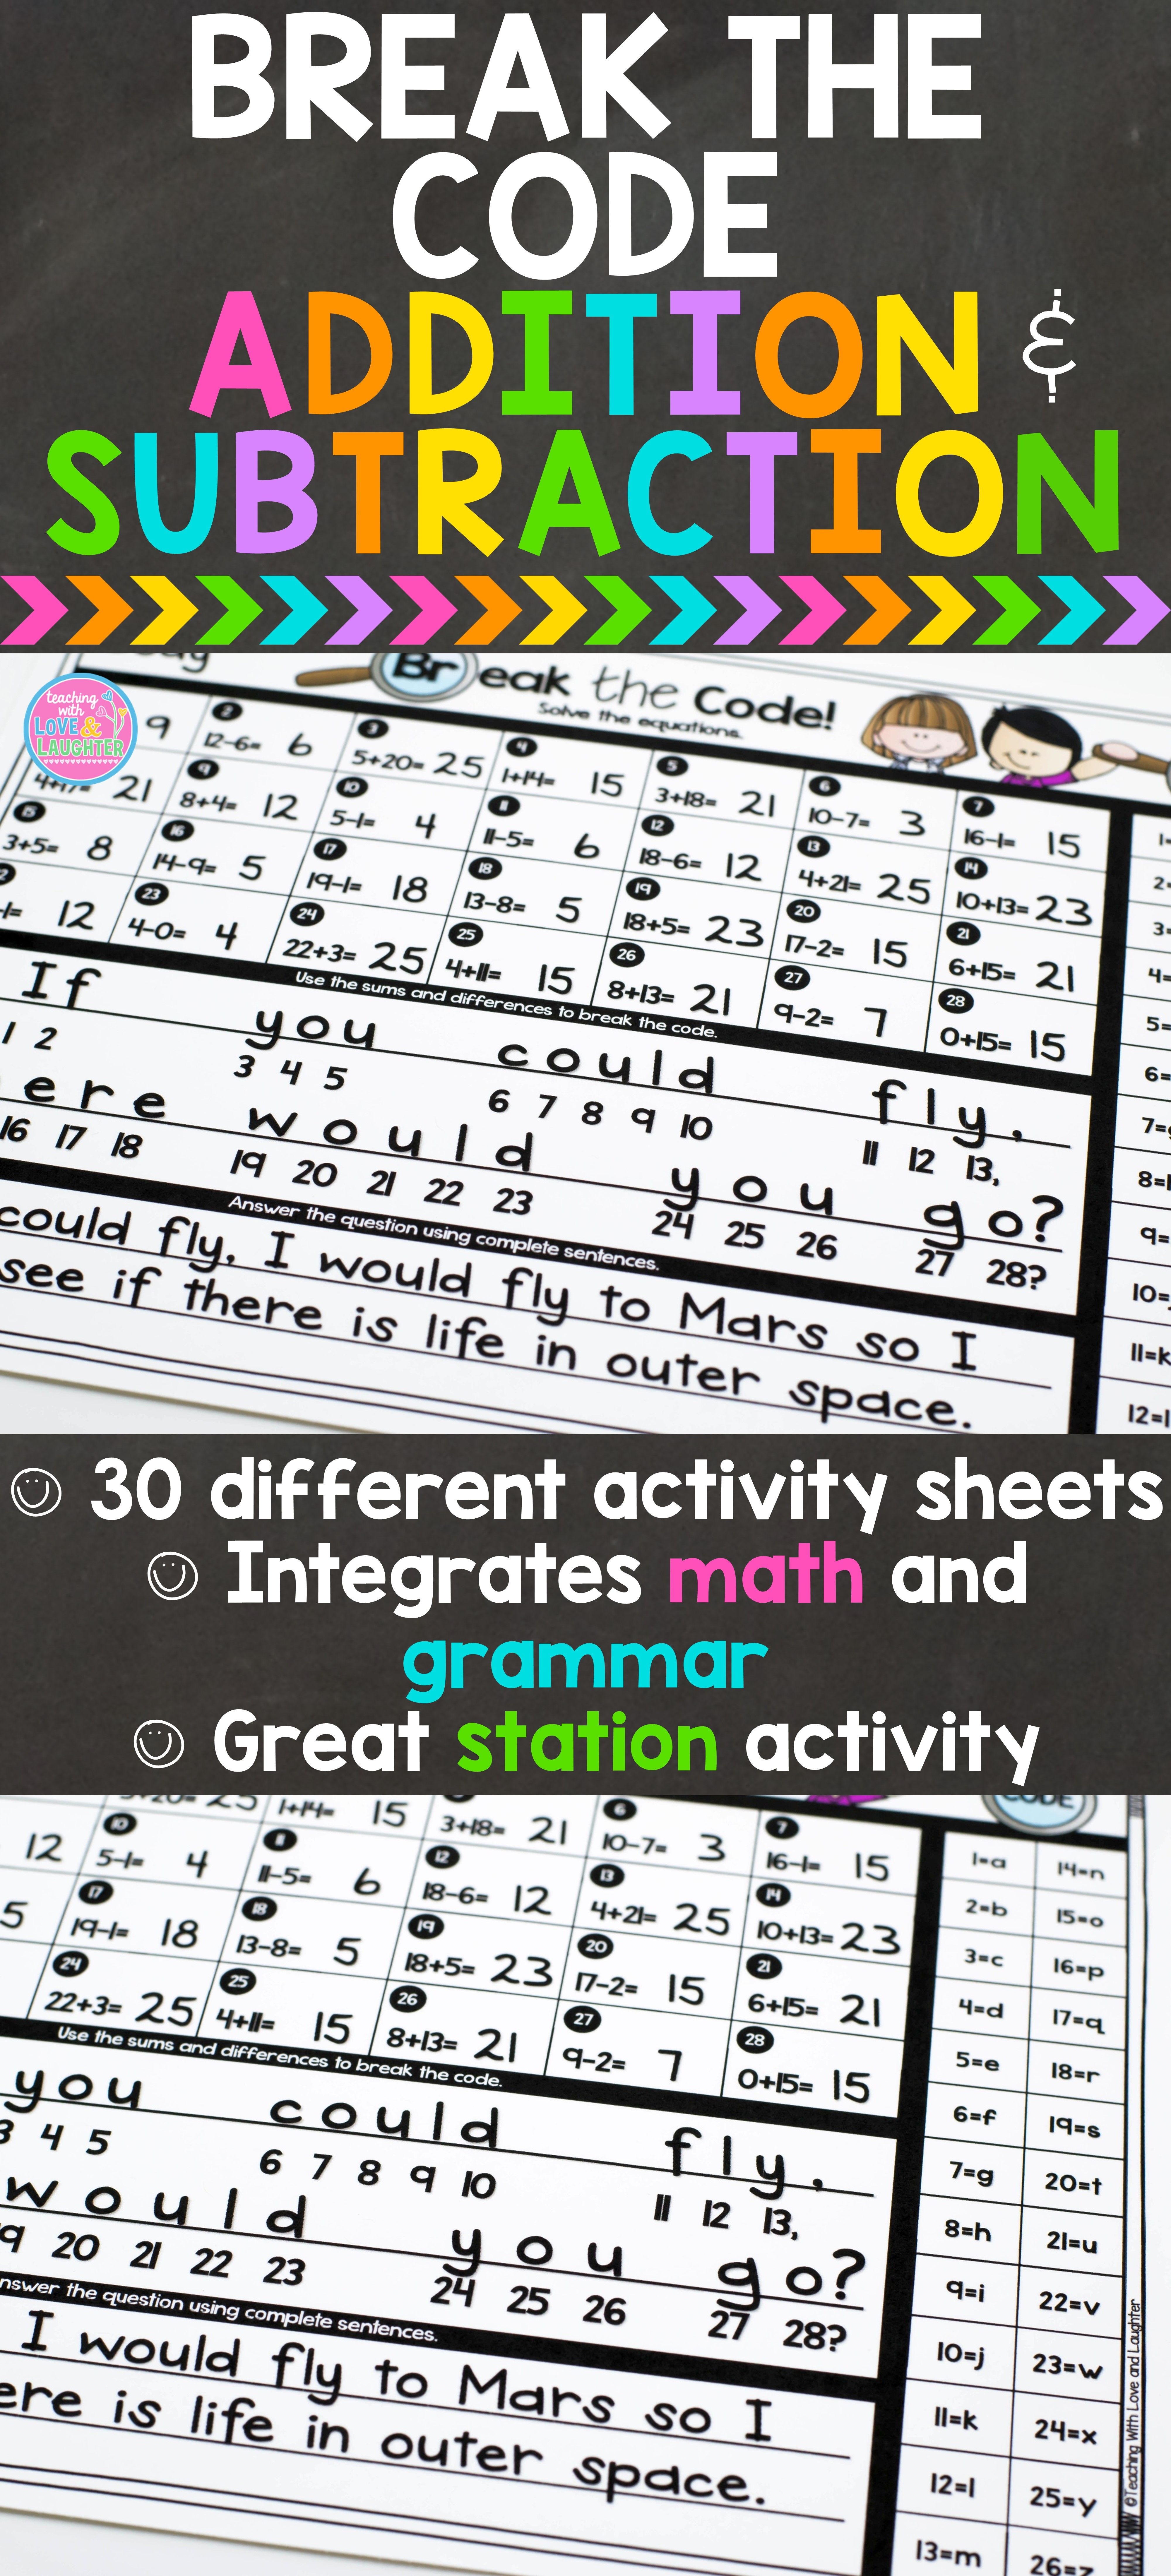 Break The Code Is A Fun Way For Students To Practice Addition And Subtraction As Well As